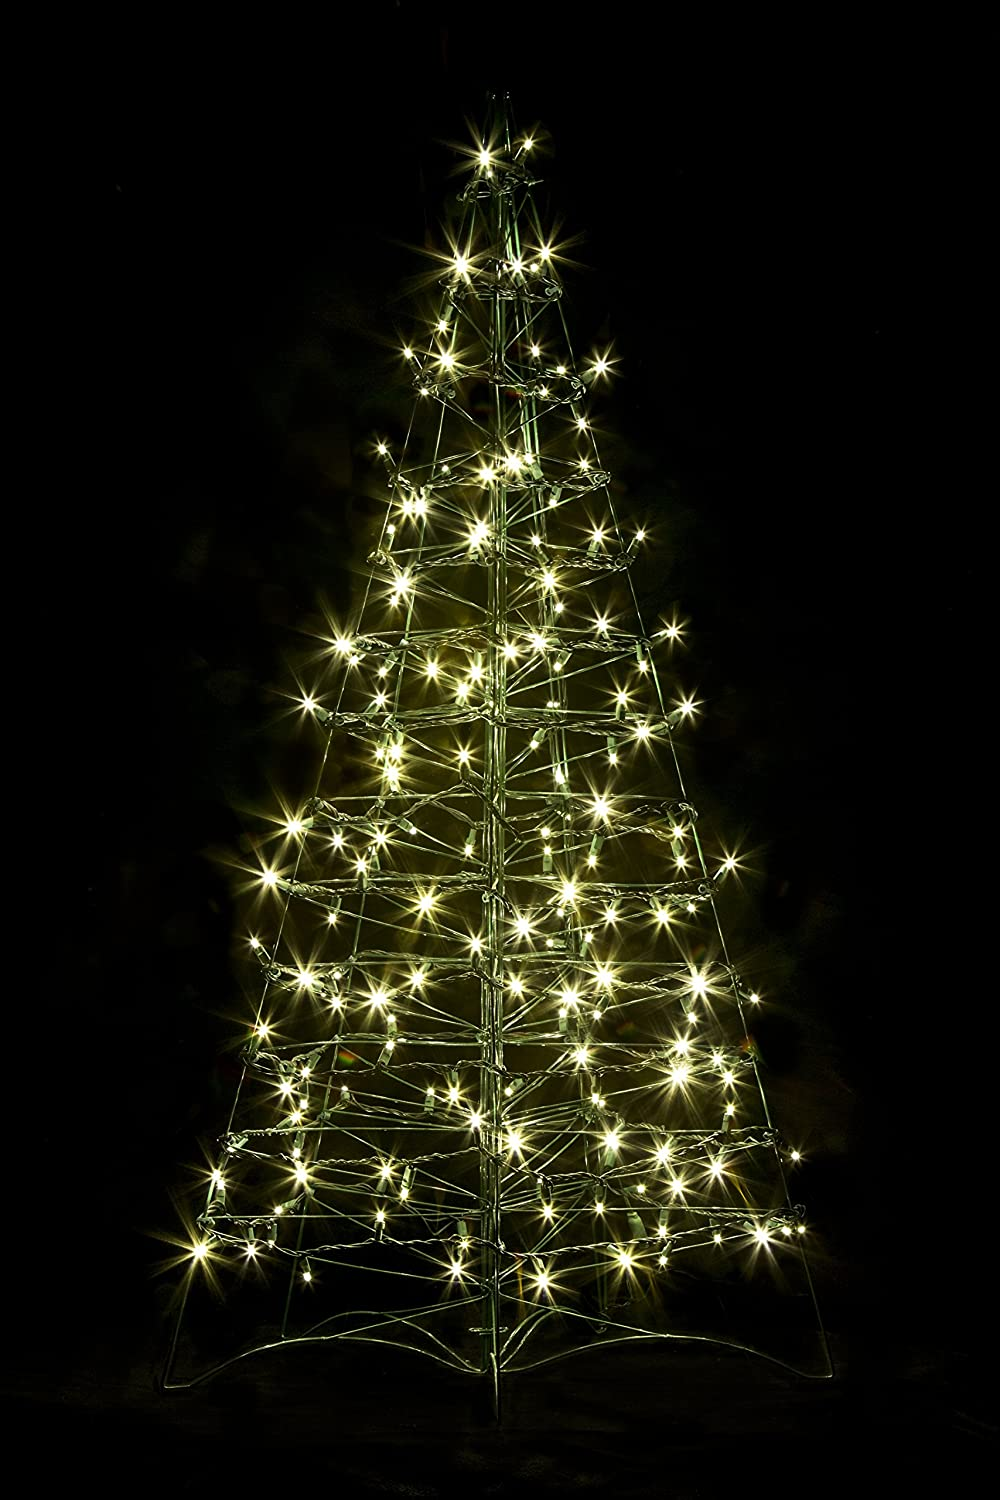 Outdoor Xmas Tree Lights Amazon pre lit led 4 folds flat outdoor christmas tree w 160 amazon pre lit led 4 folds flat outdoor christmas tree w 160 warm white lights imported garden outdoor workwithnaturefo